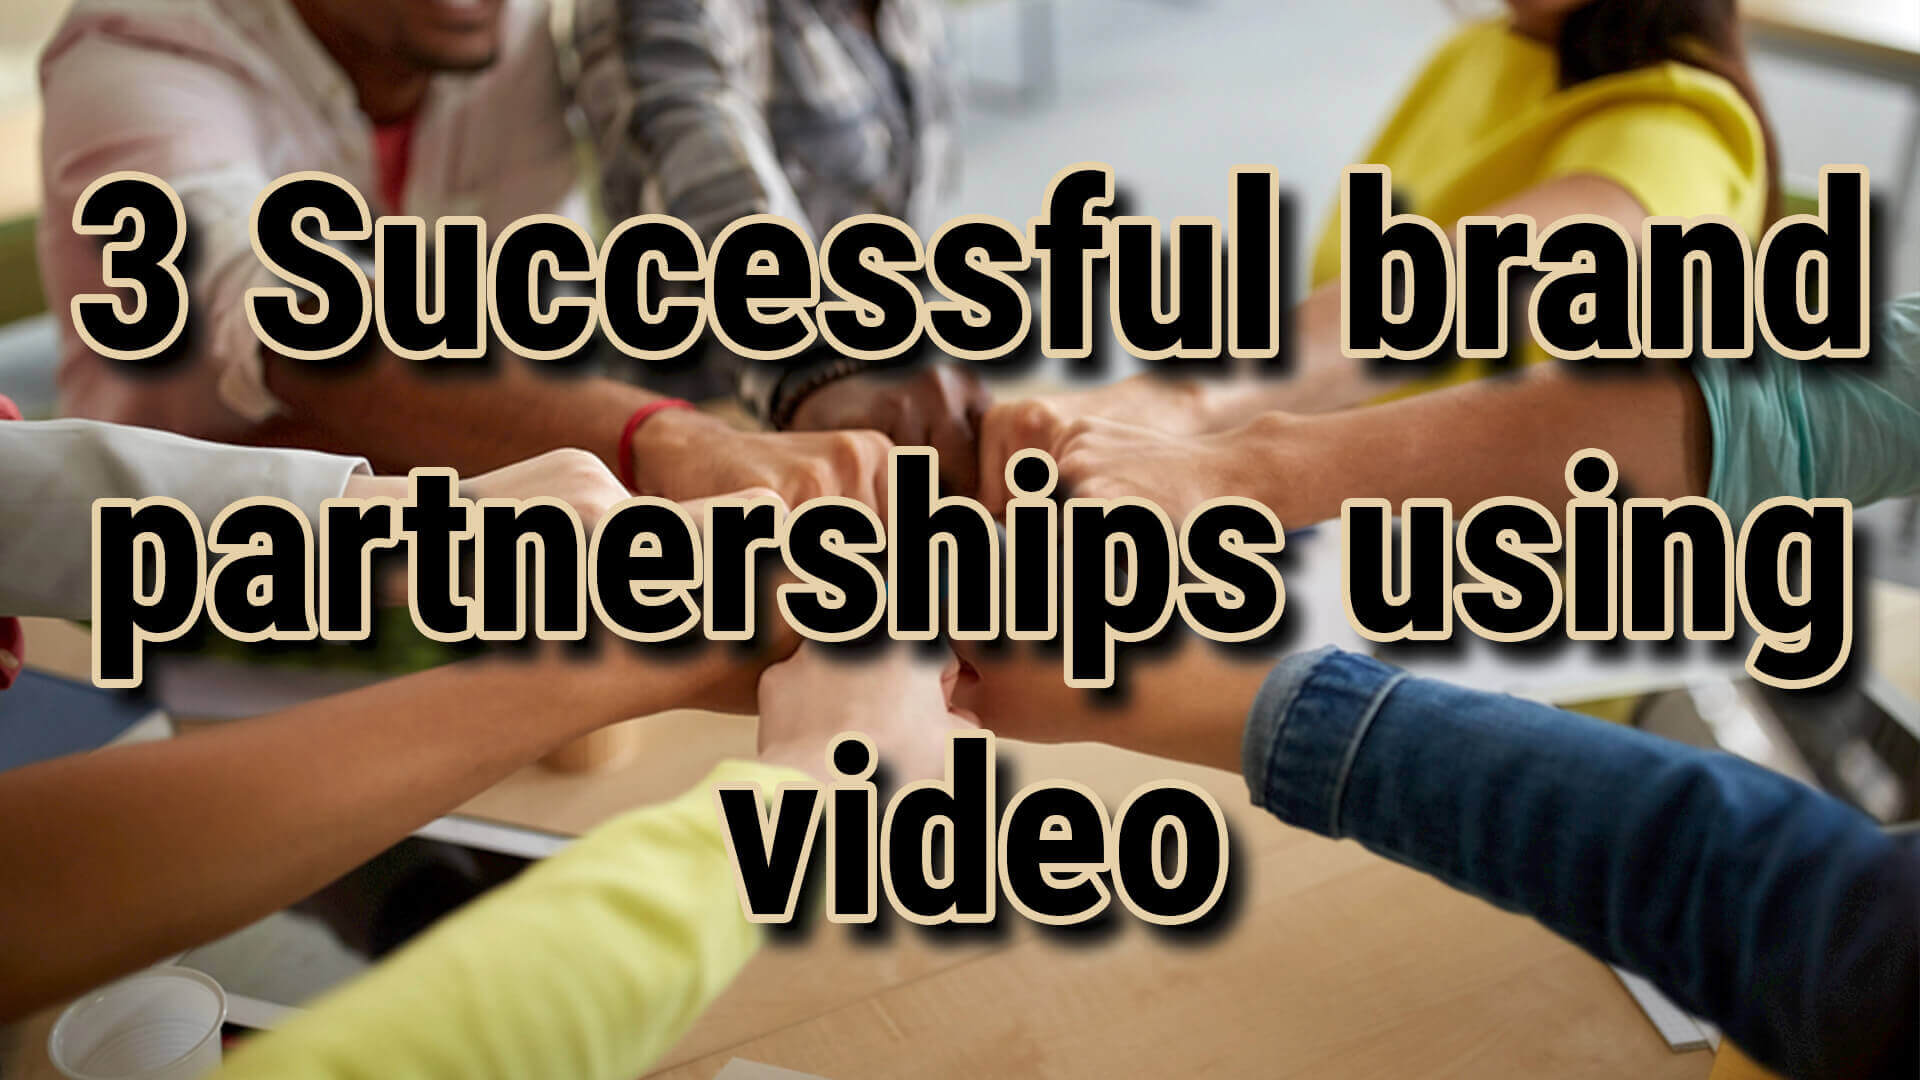 brand partnerships using video